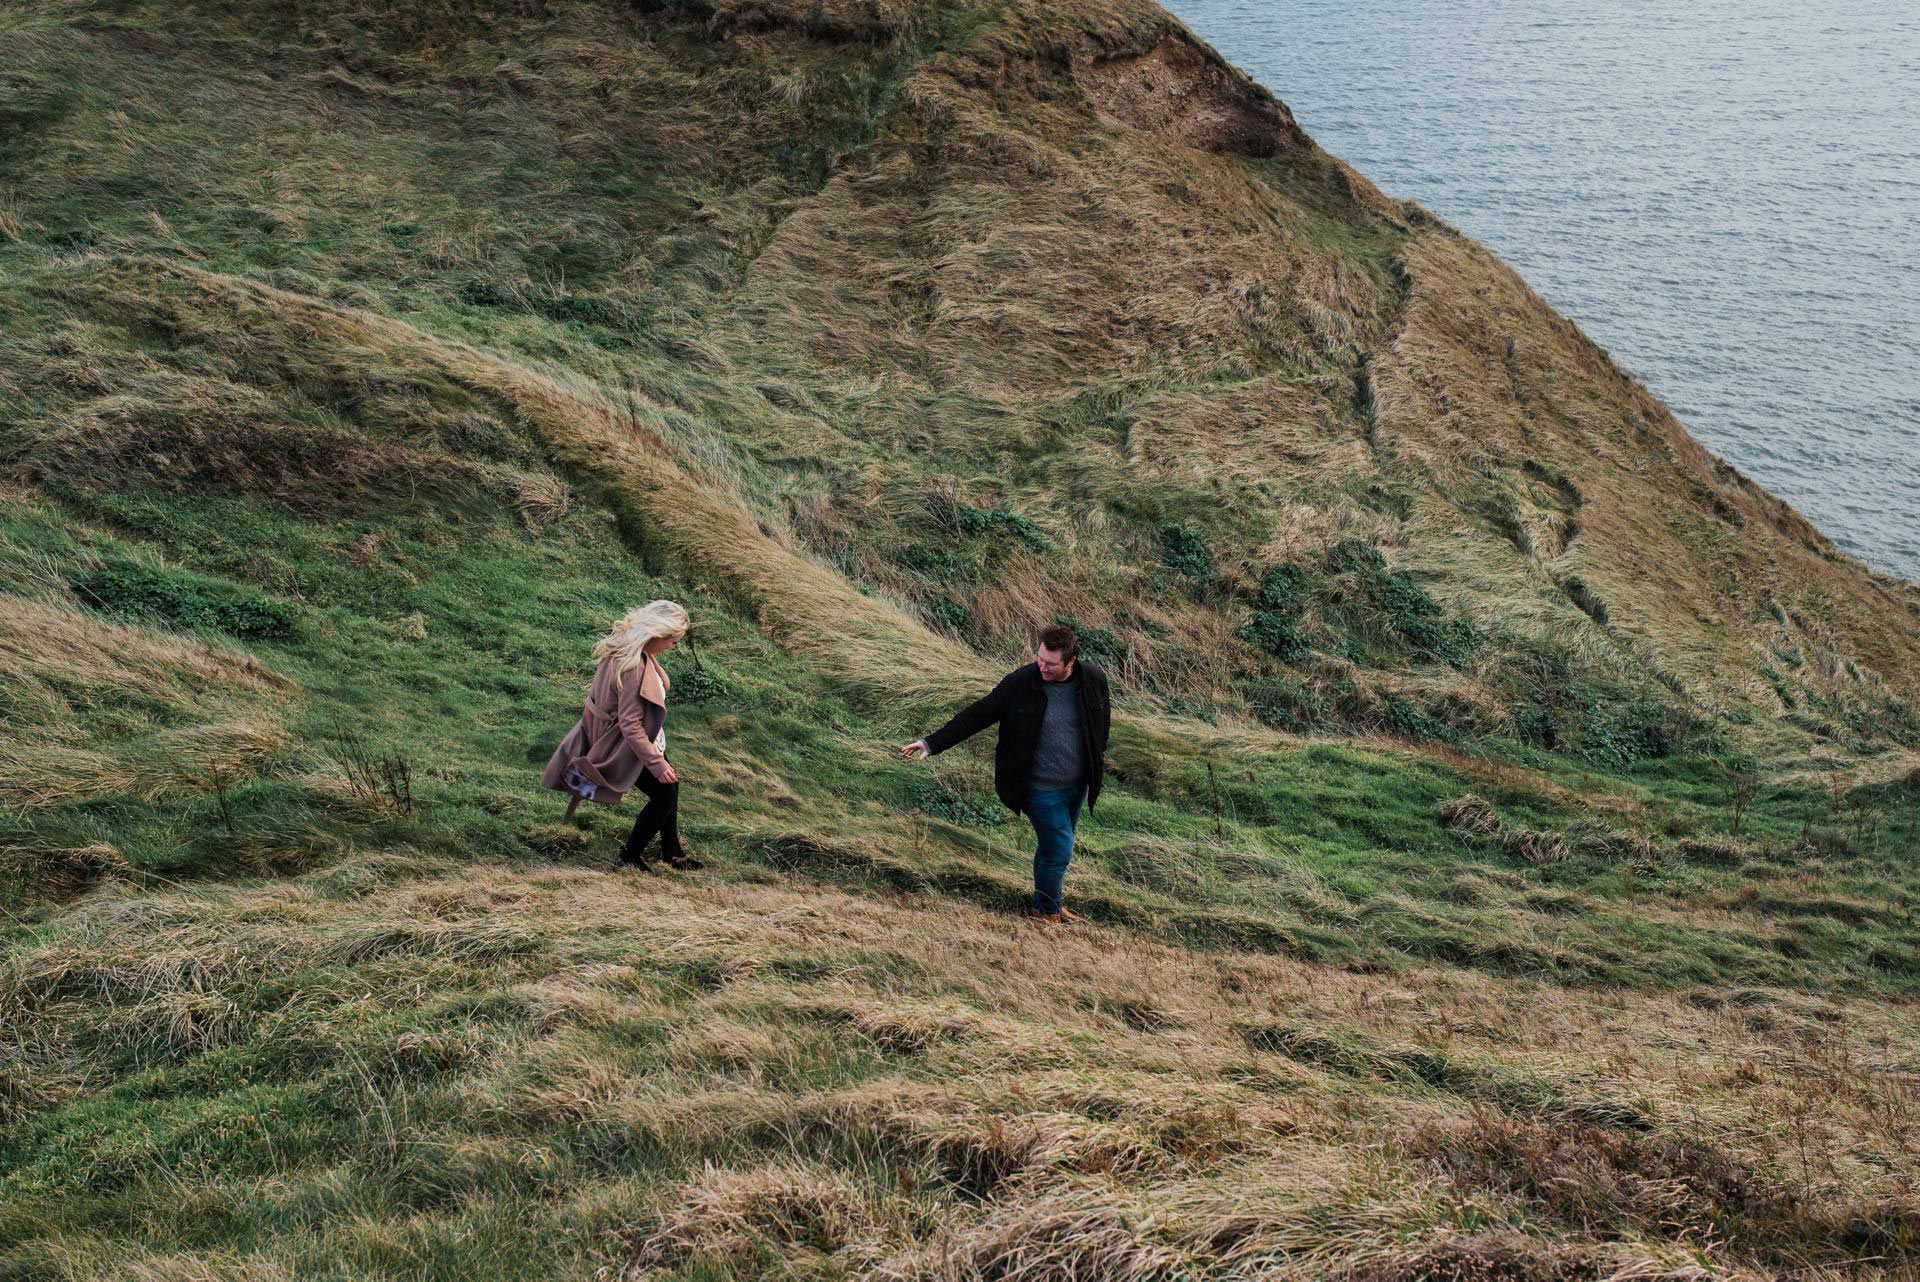 Man reaches for his Fiance while walking along the oceanside cliffs at Howth Cliffs